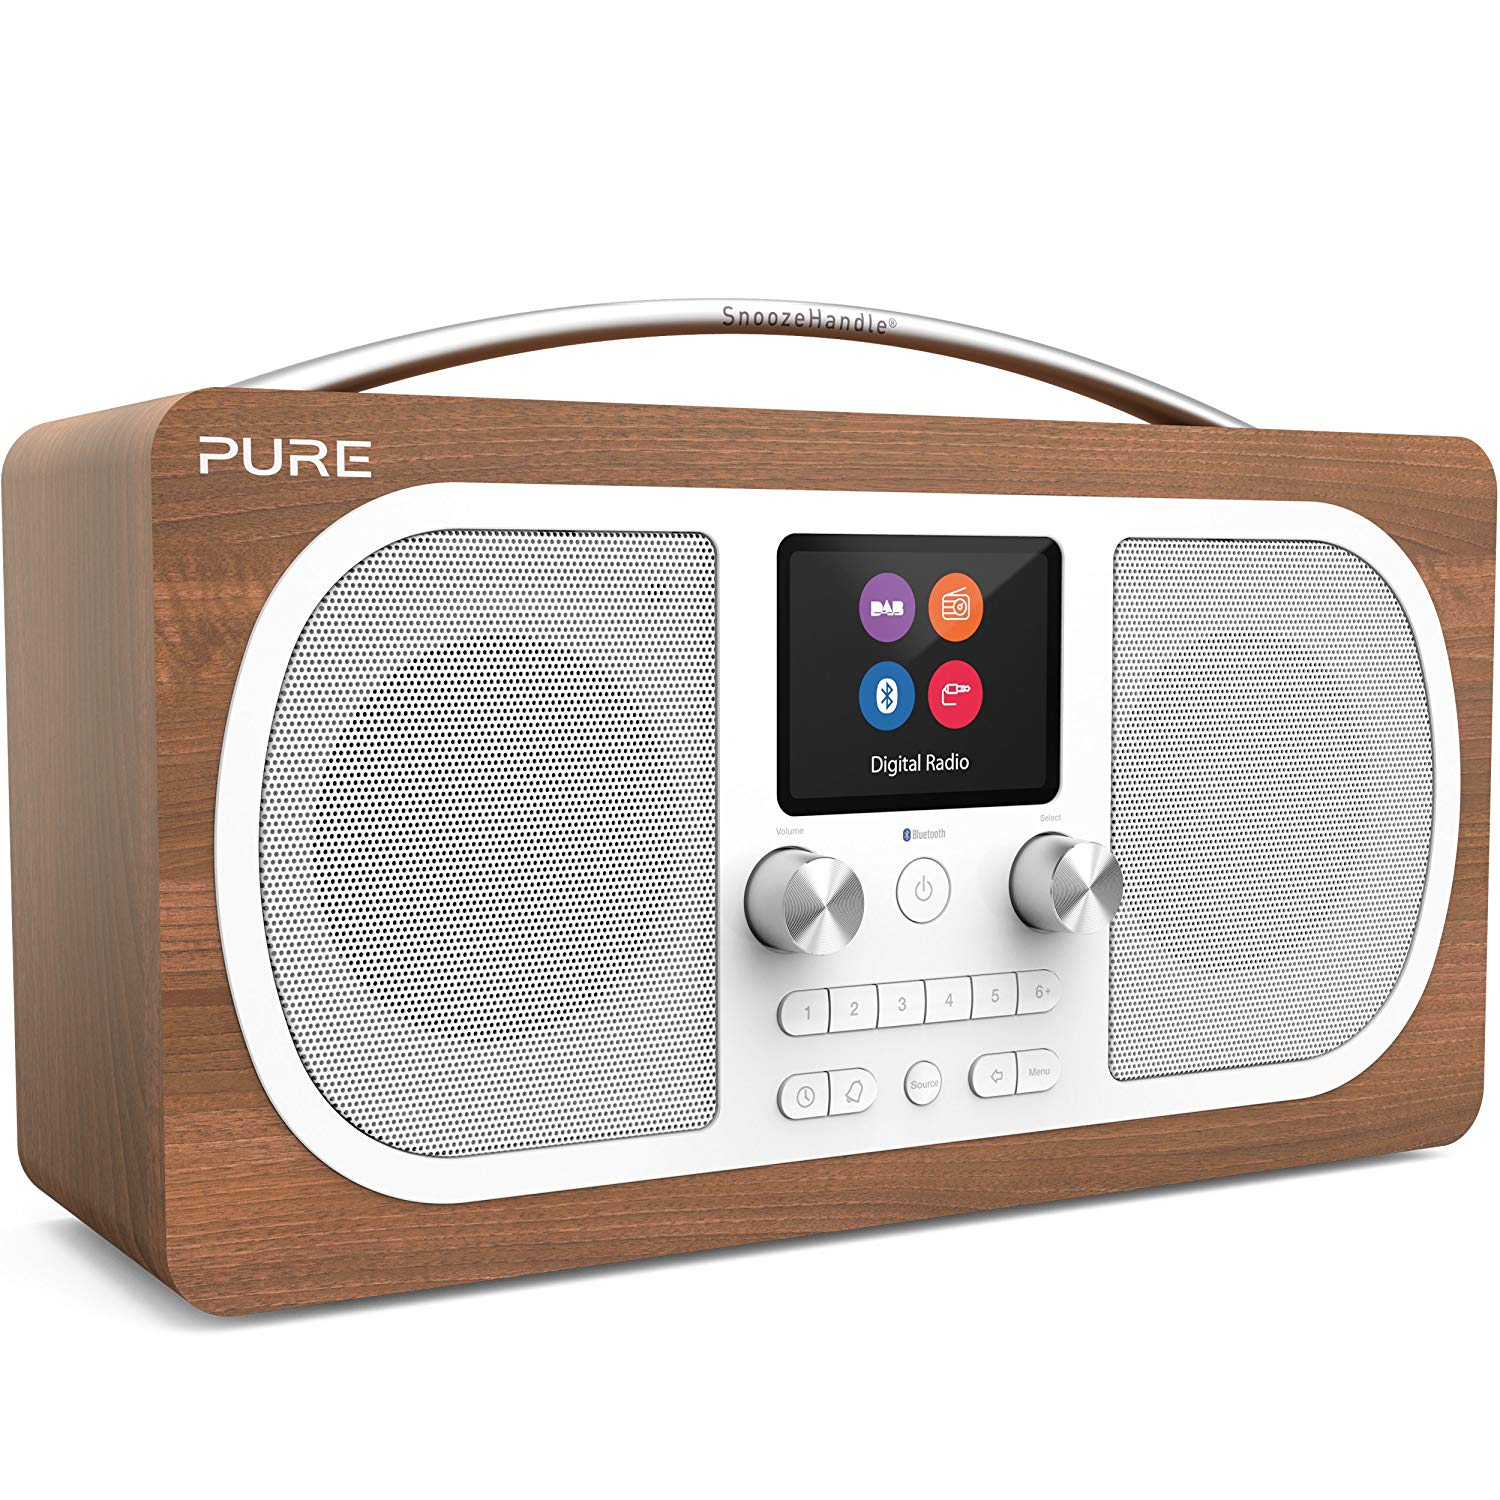 Pure - Evoke H6 DAB+ Radio - Walnut